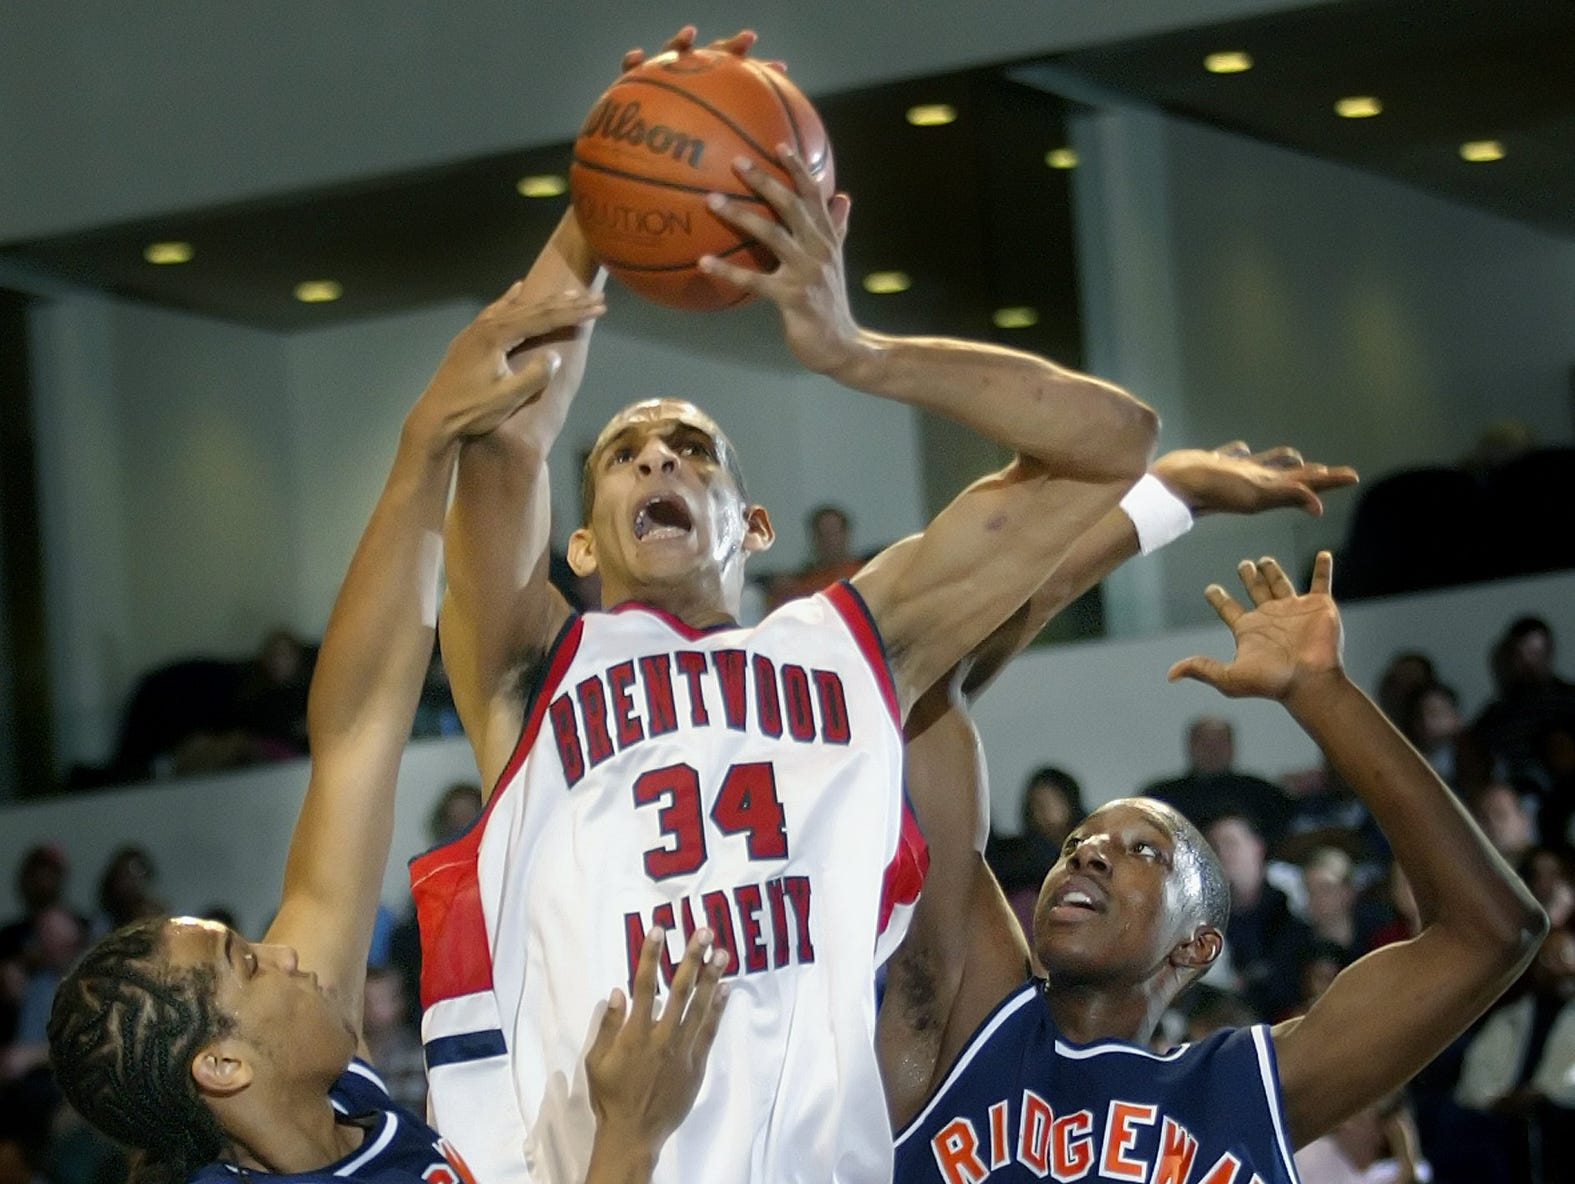 Brandan Wright (34) led Brentwood Academy to four straight state titles from 2003 to 2006